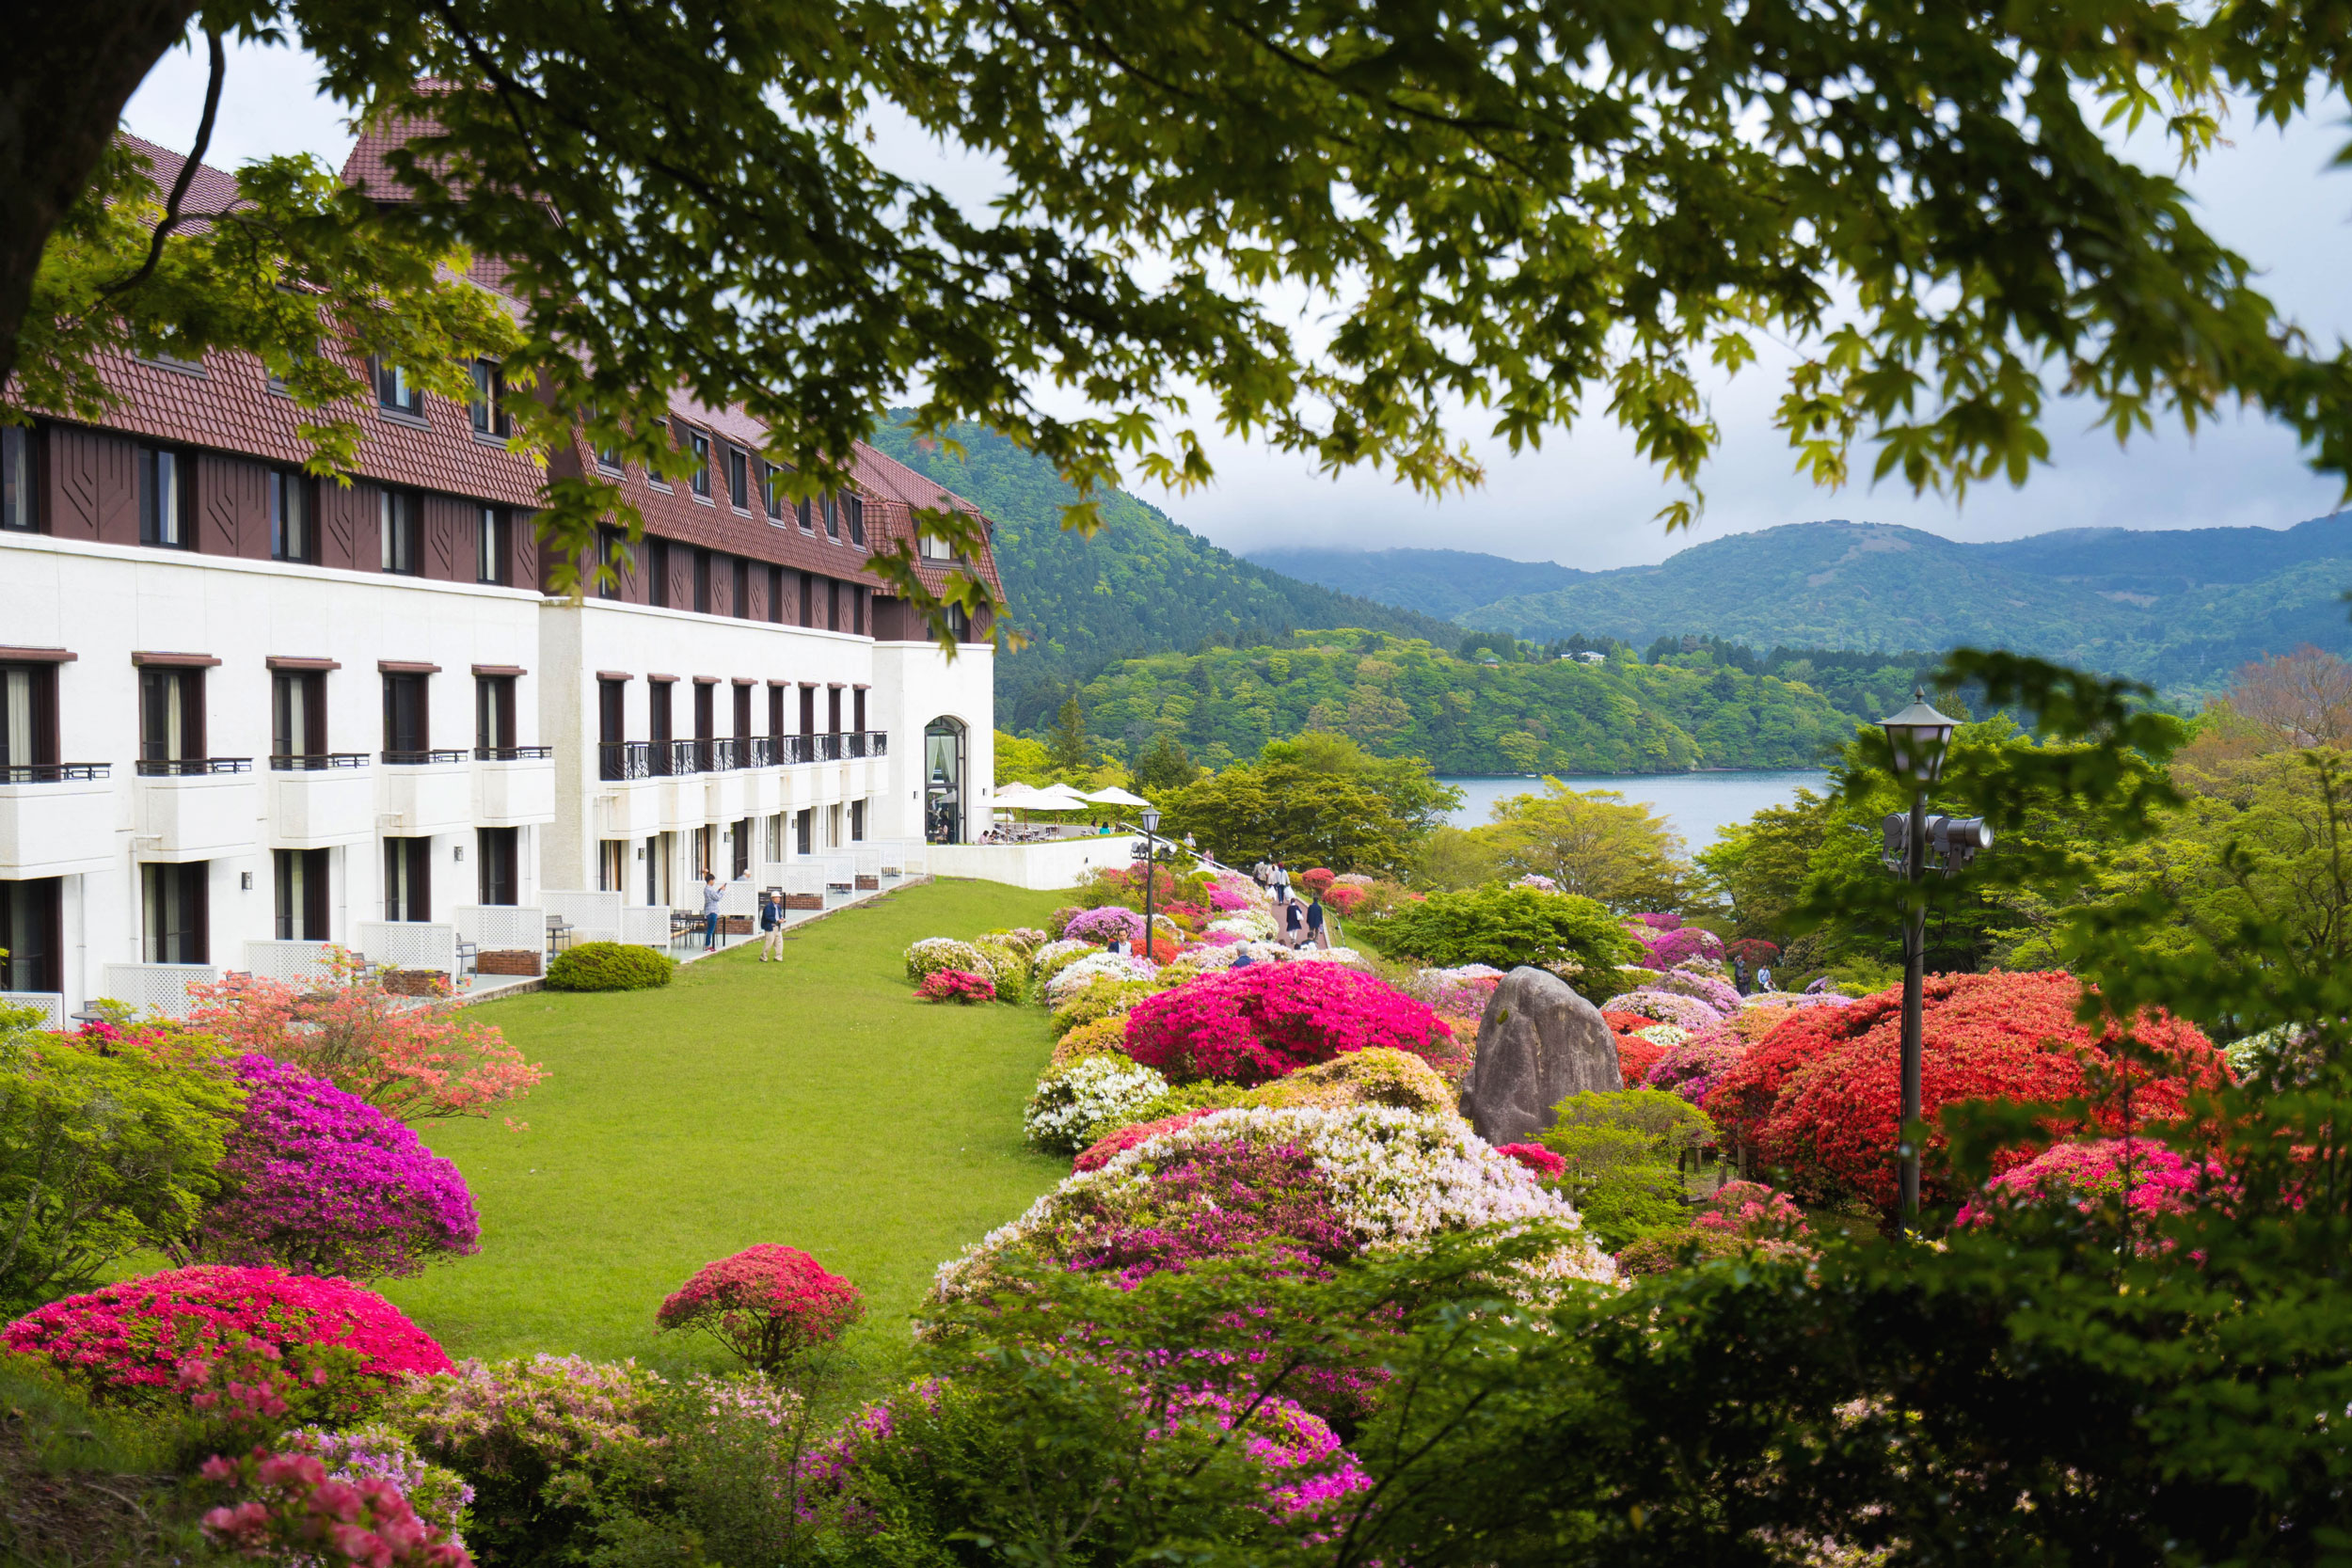 Hakone's Hotel de Yama with its garden in full bloom